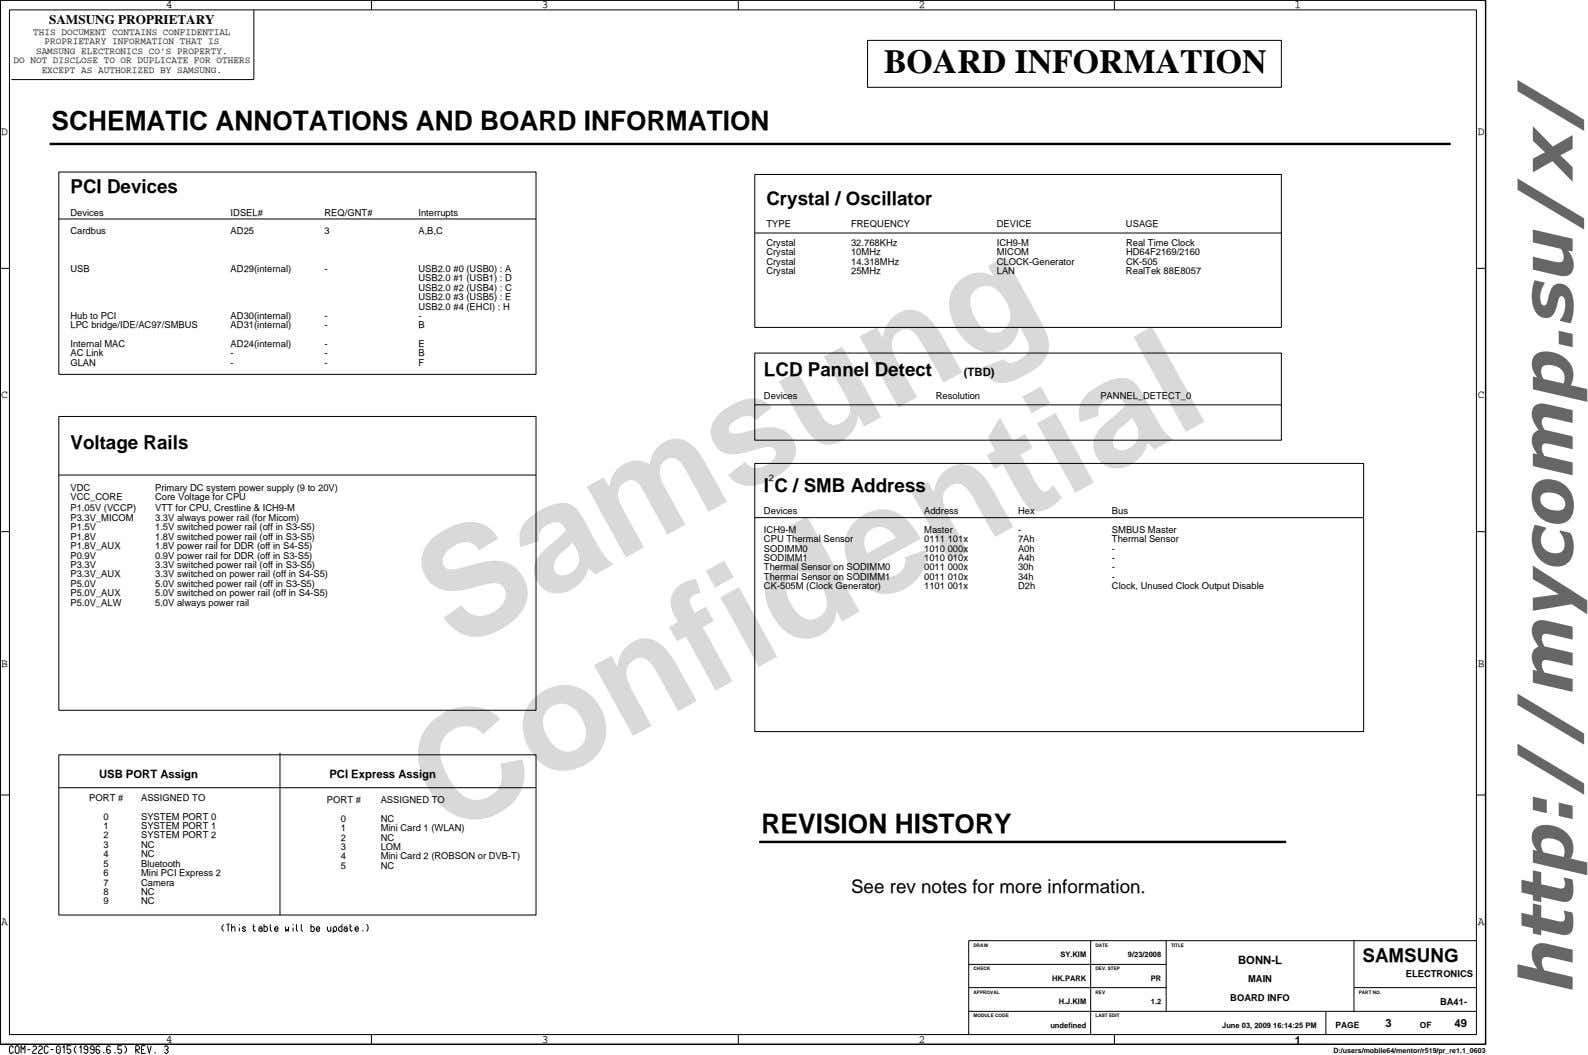 4 3 2 1 SAMSUNG PROPRIETARY THIS DOCUMENT CONTAINS CONFIDENTIAL PROPRIETARY INFORMATION THAT IS SAMSUNG